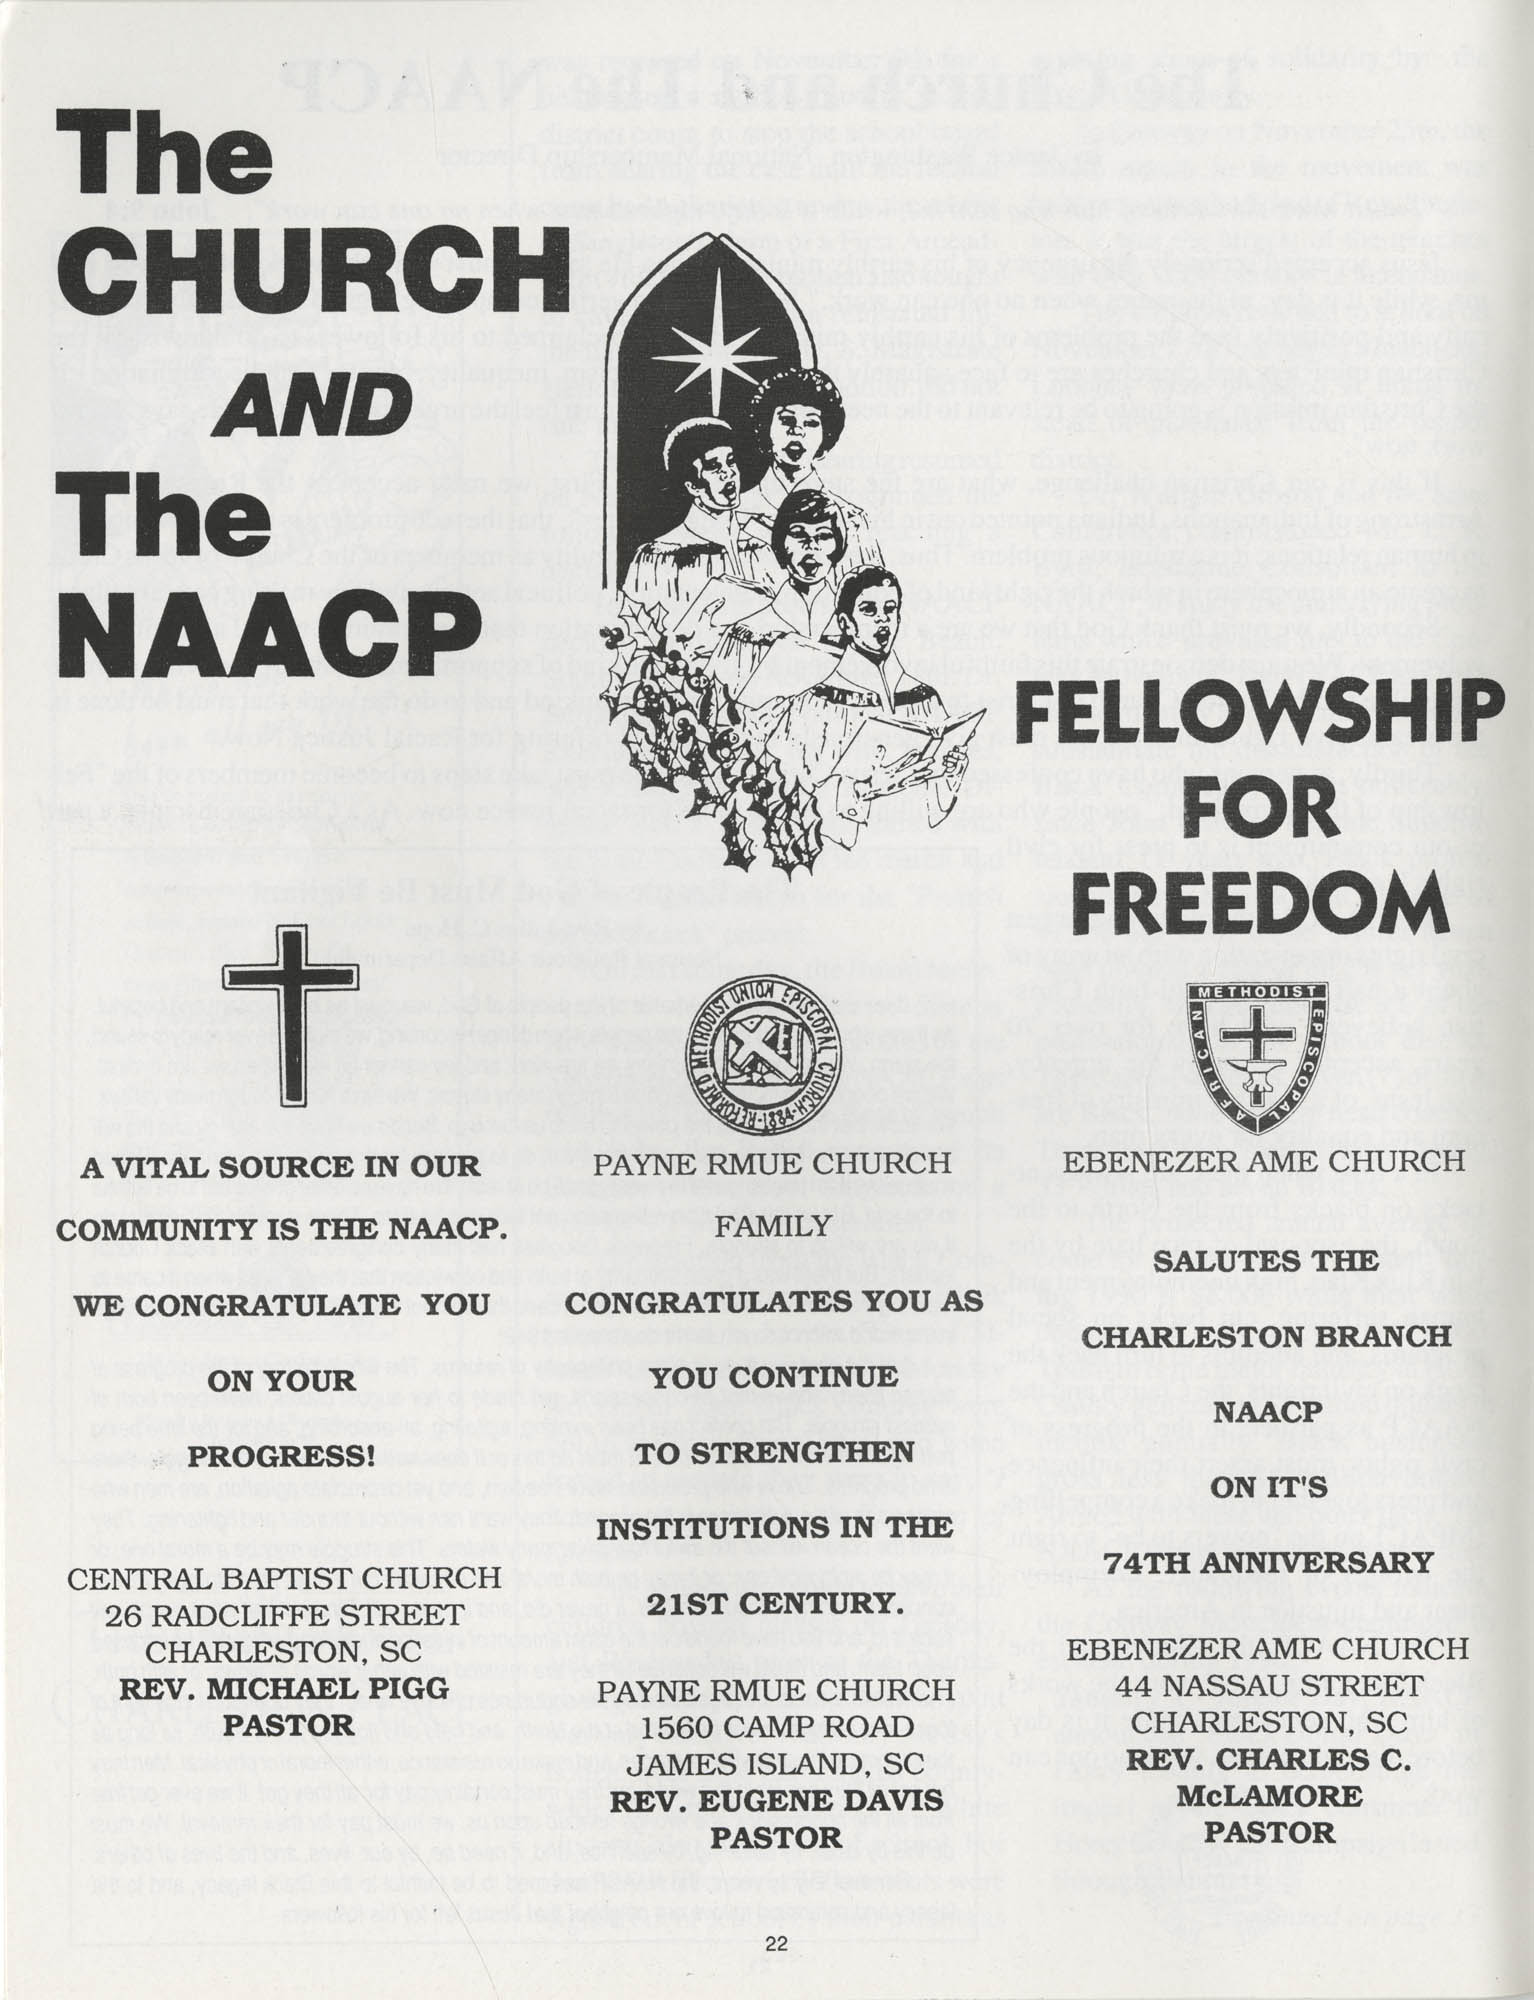 1990 NAACP Freedom Fund Magazine, Charleston Branch of the NAACP, 74th Anniversary, Page 22